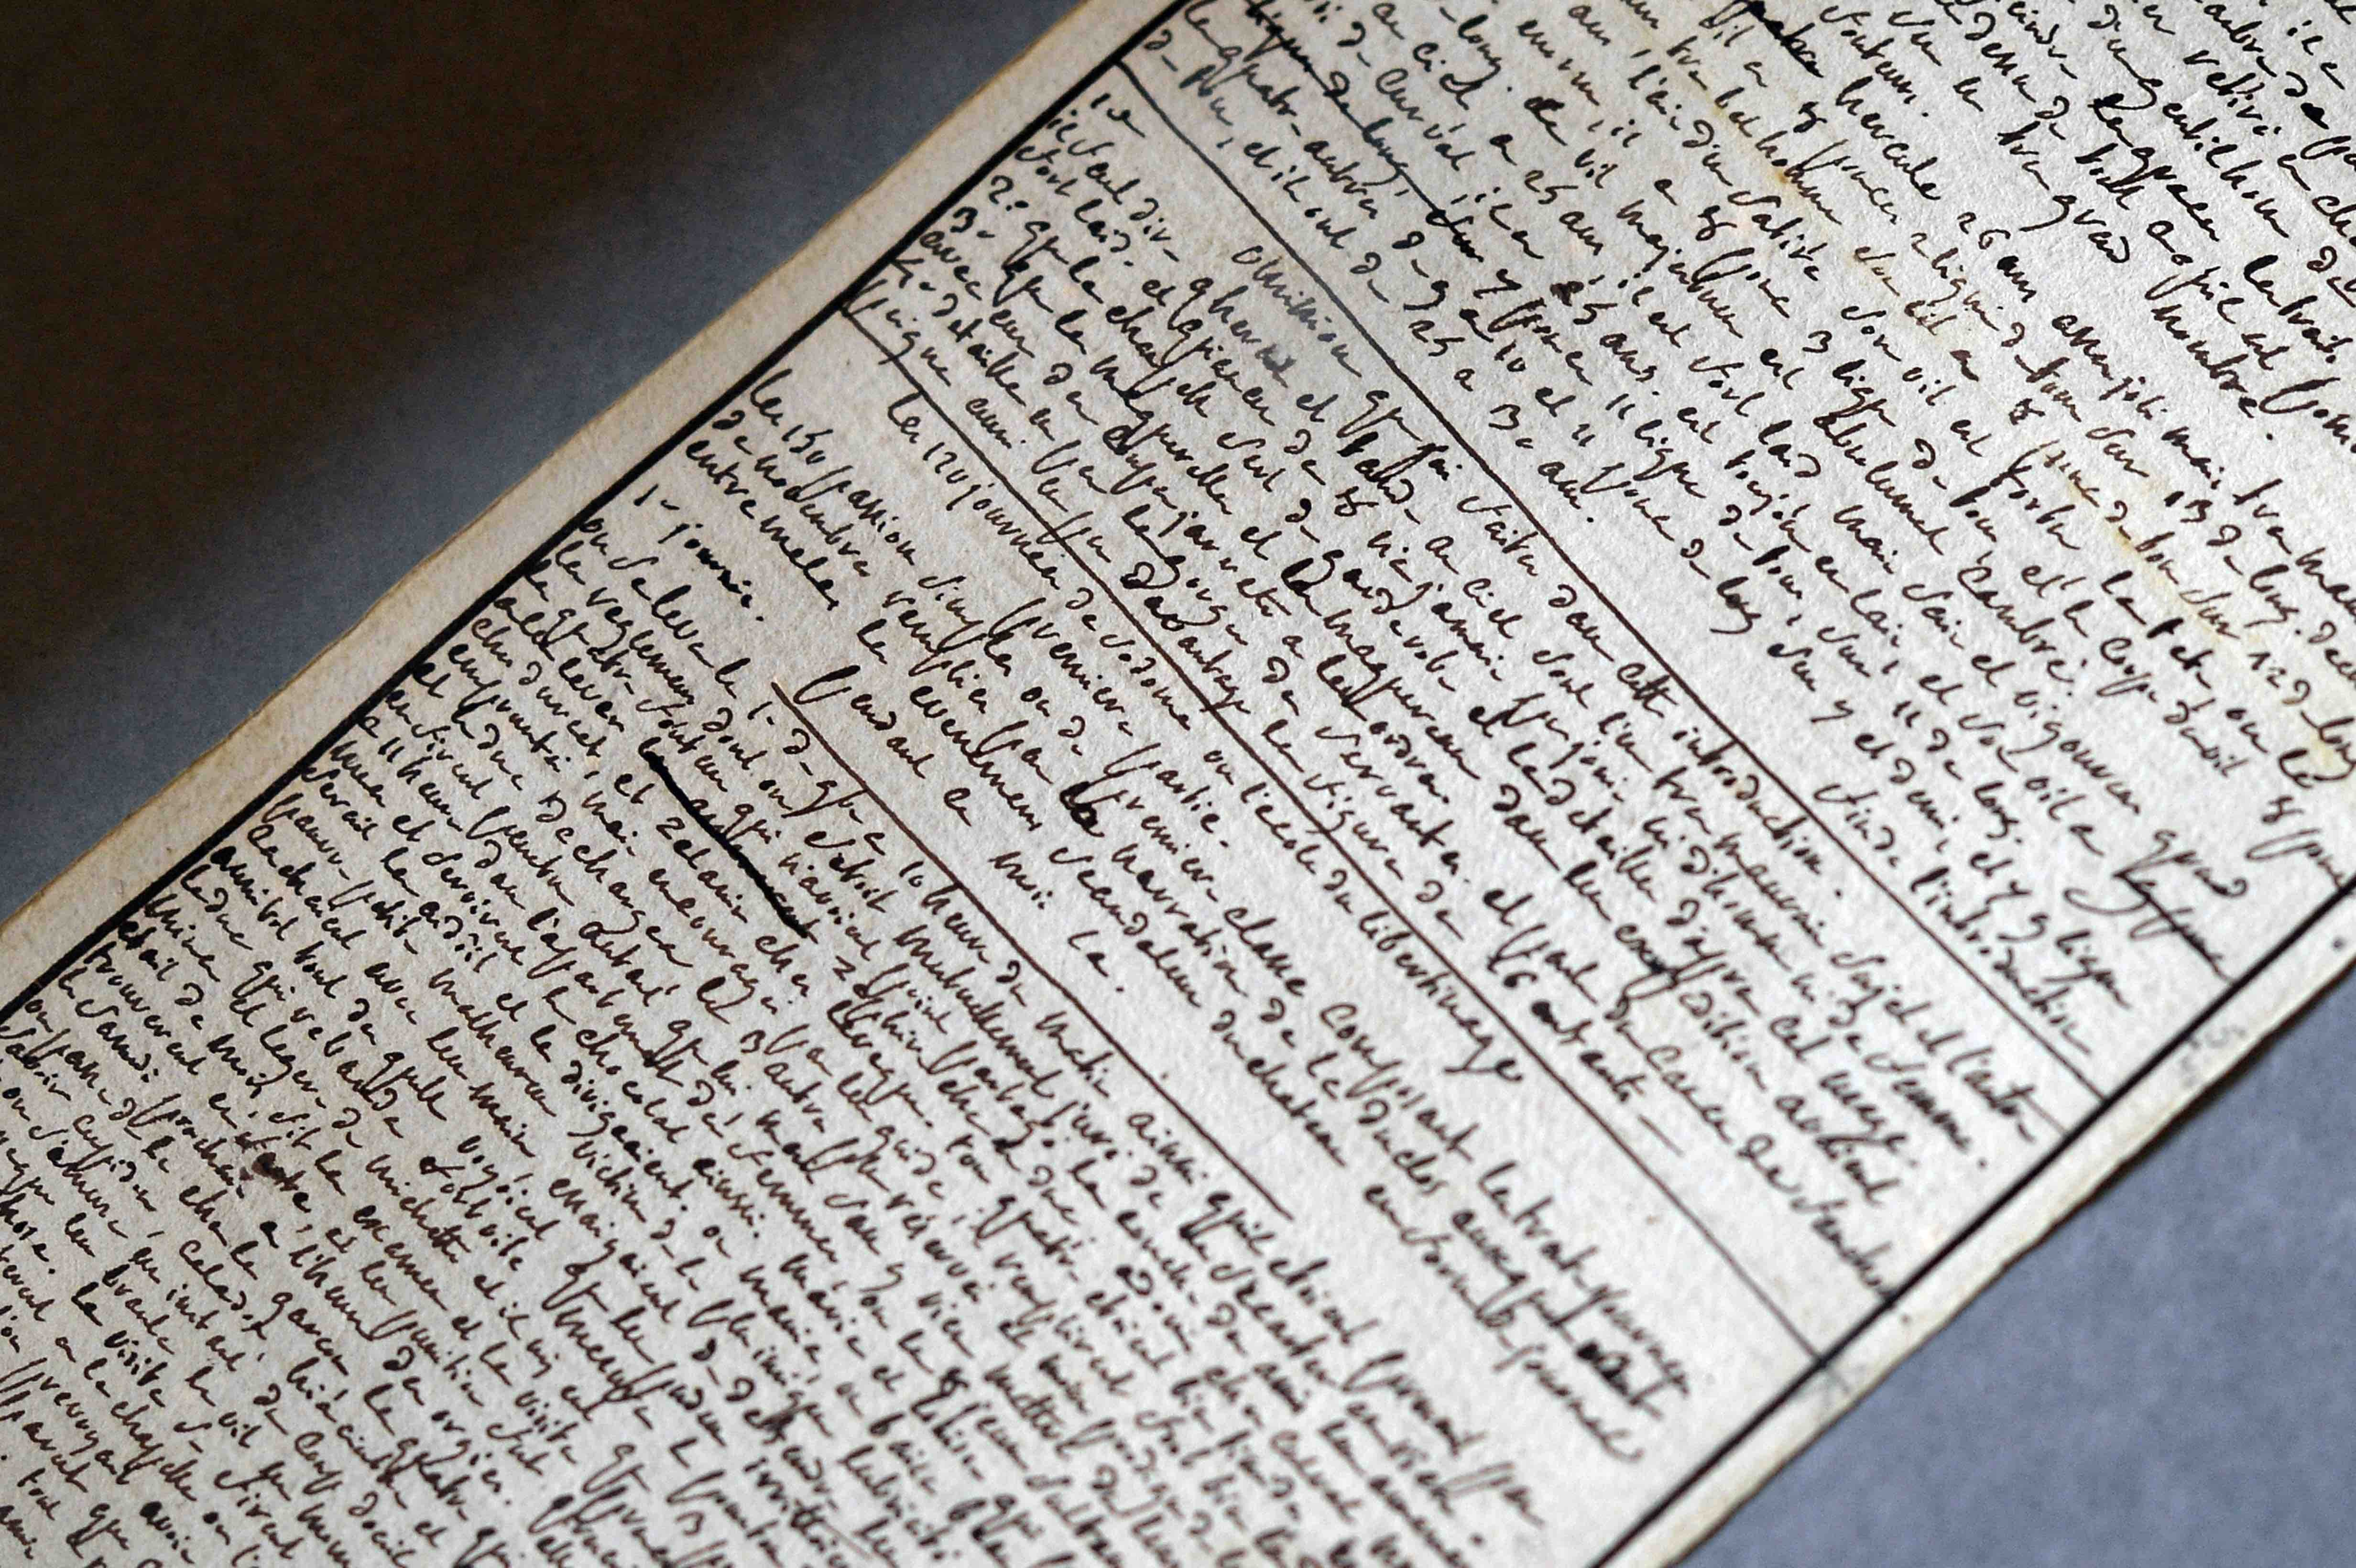 The manuscript of 'The 120 Days of Sodom' written by the Marquis de Sade while he was imprisoned at the Bastille in 1785.